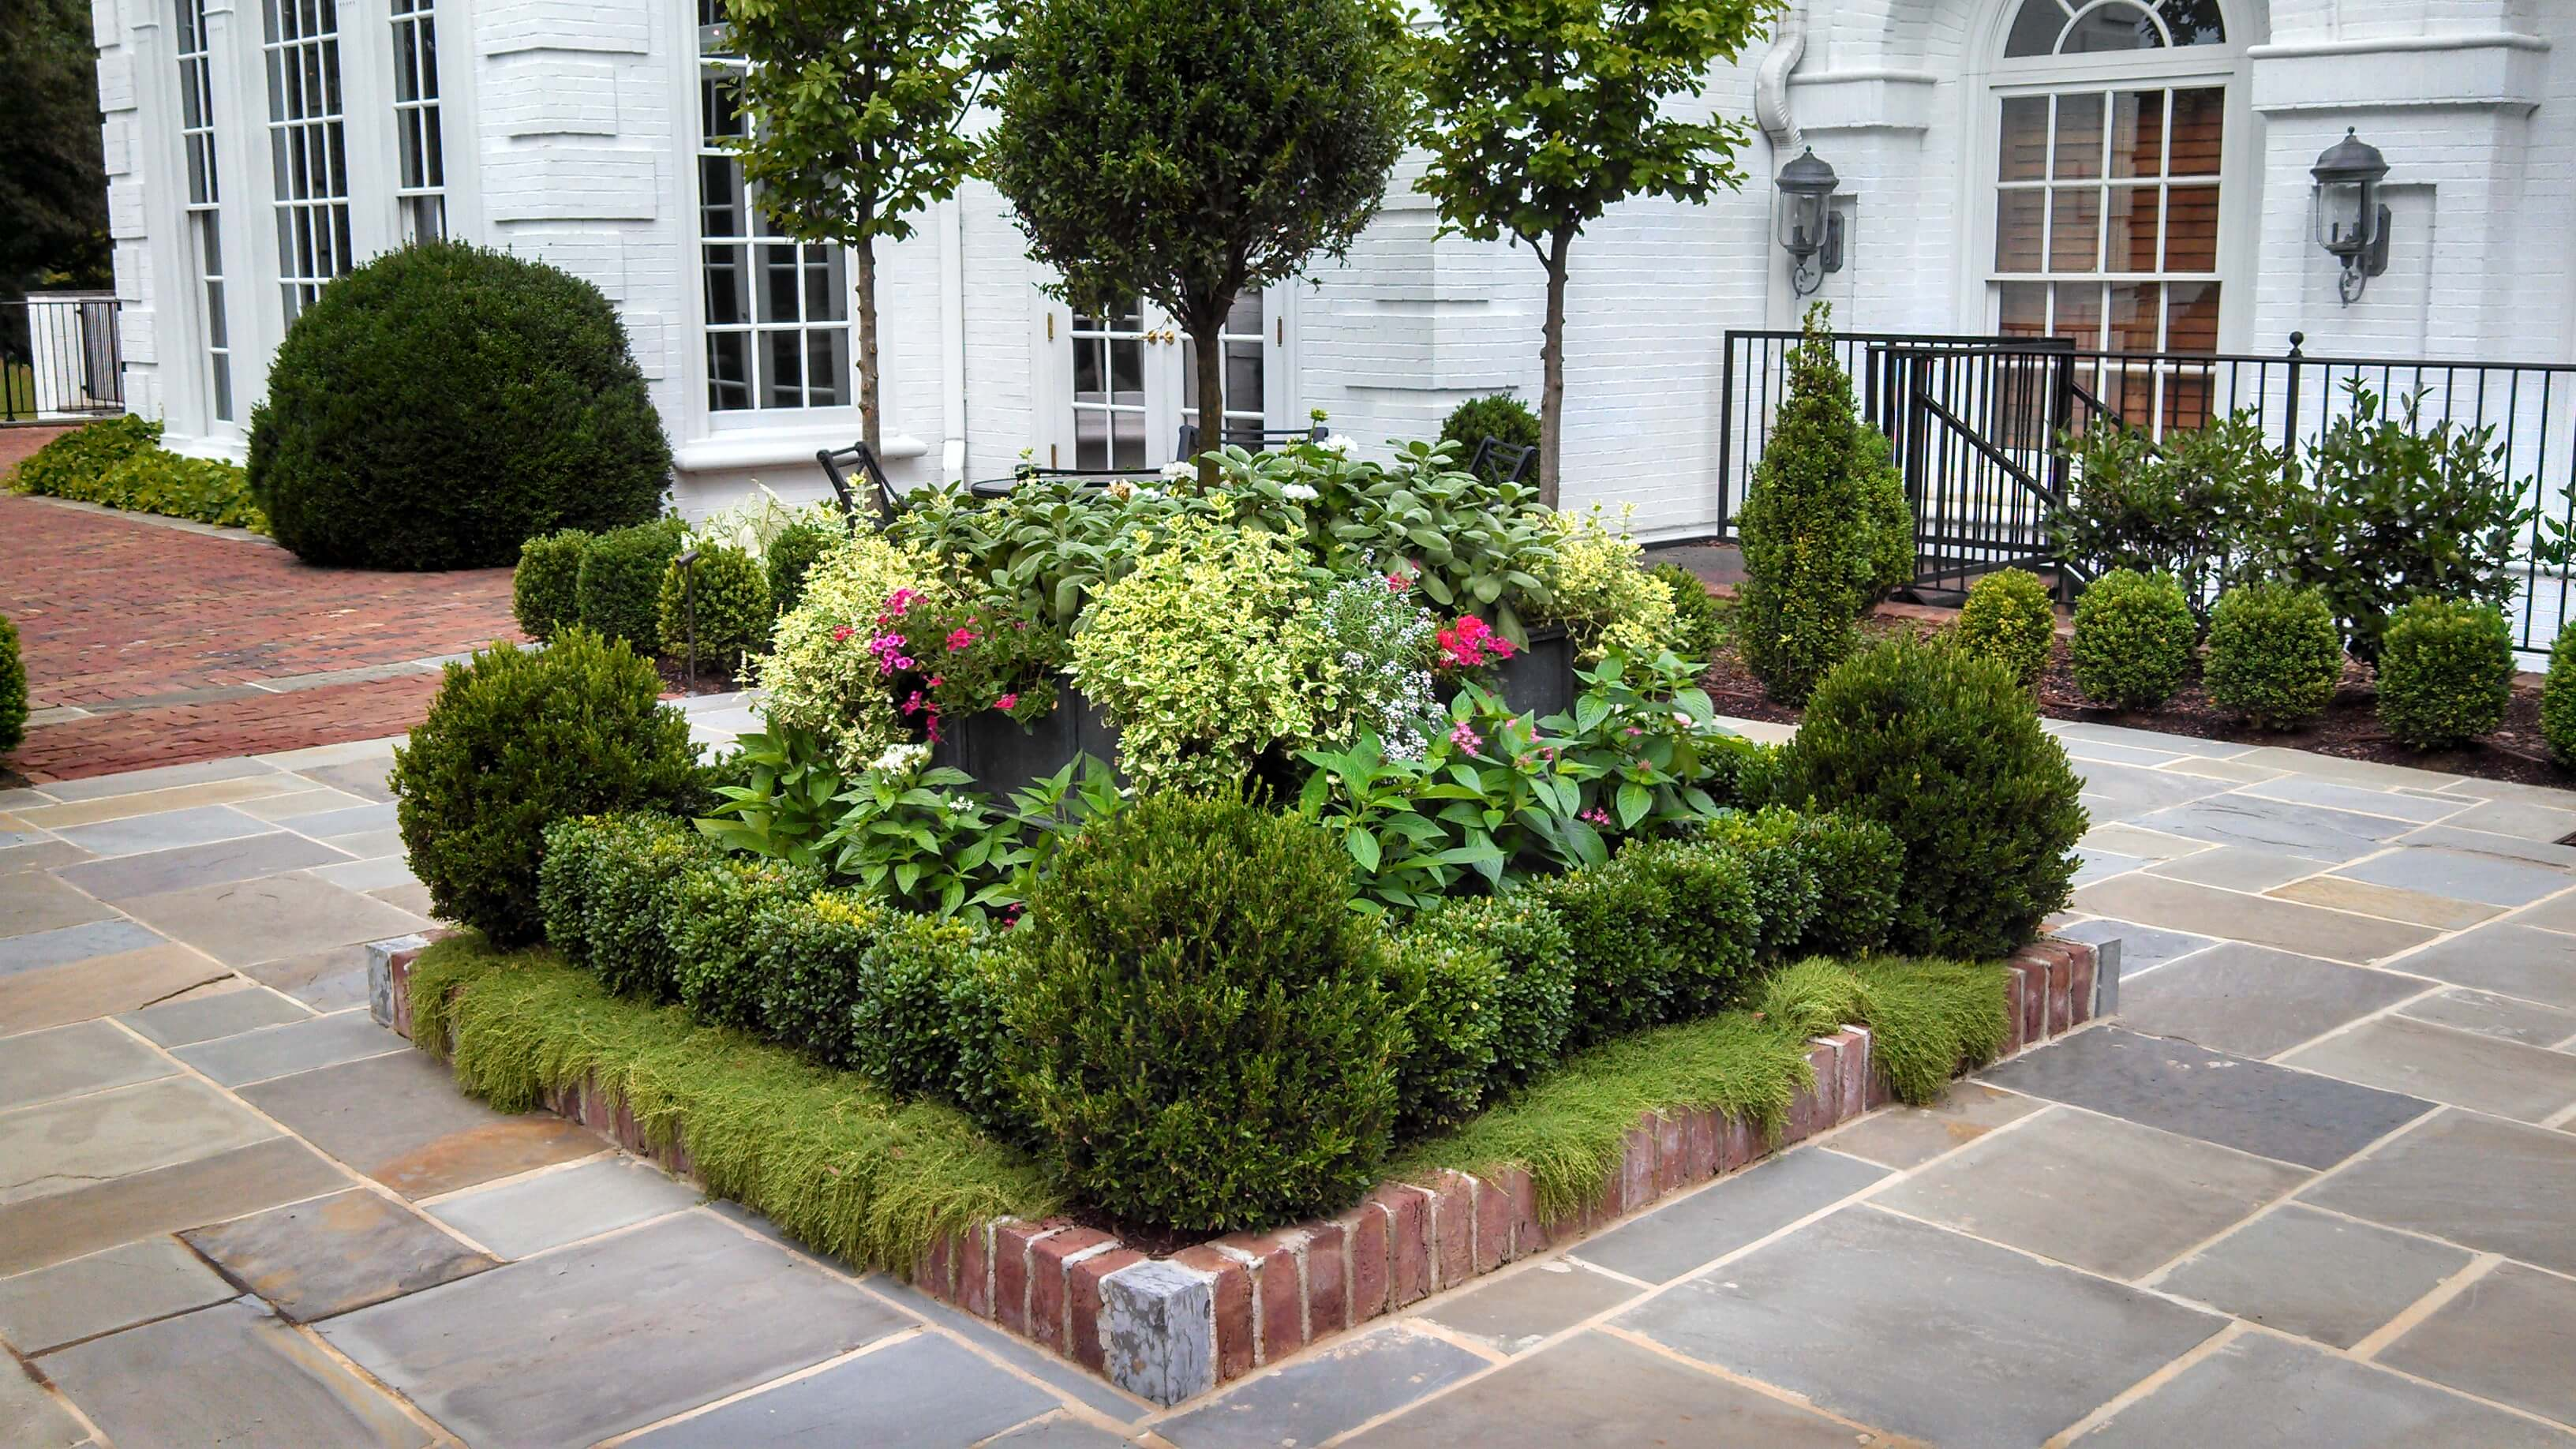 50 Best Front Yard Landscaping Ideas and Garden Designs ... on Landscape Front Yard Ideas id=42647